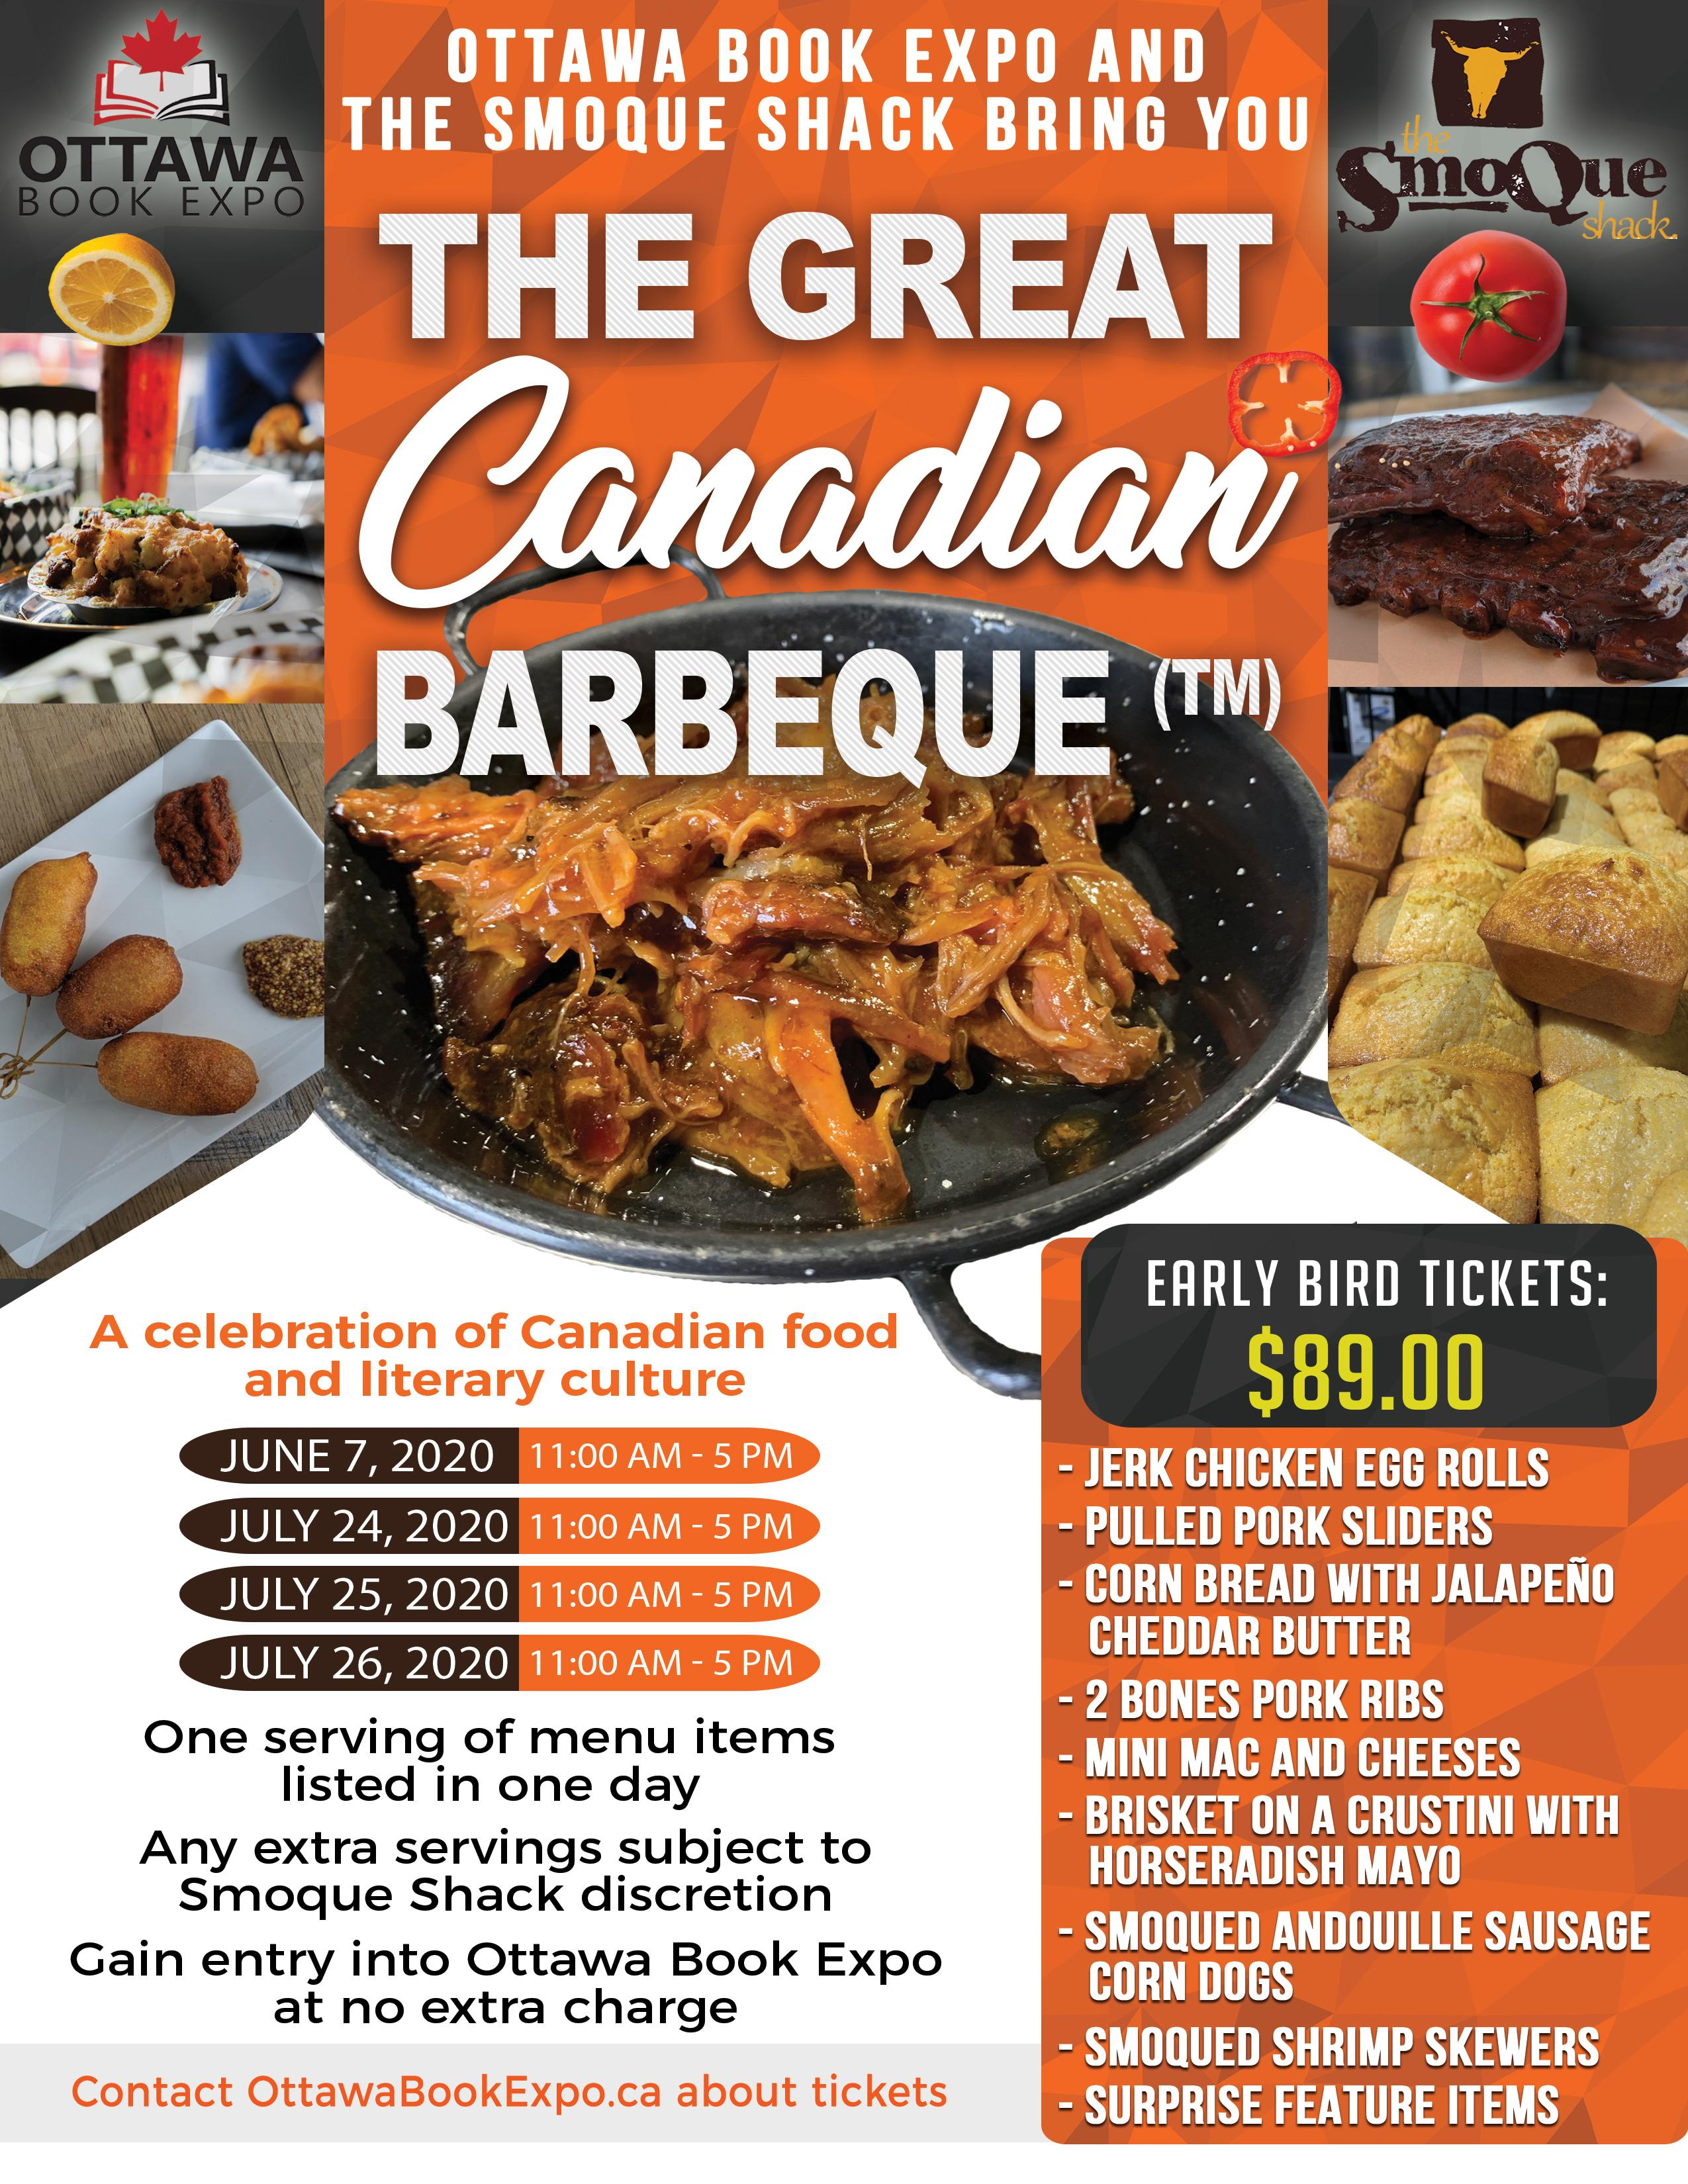 Ottawa Book Expo - Great Canadian Barbeque